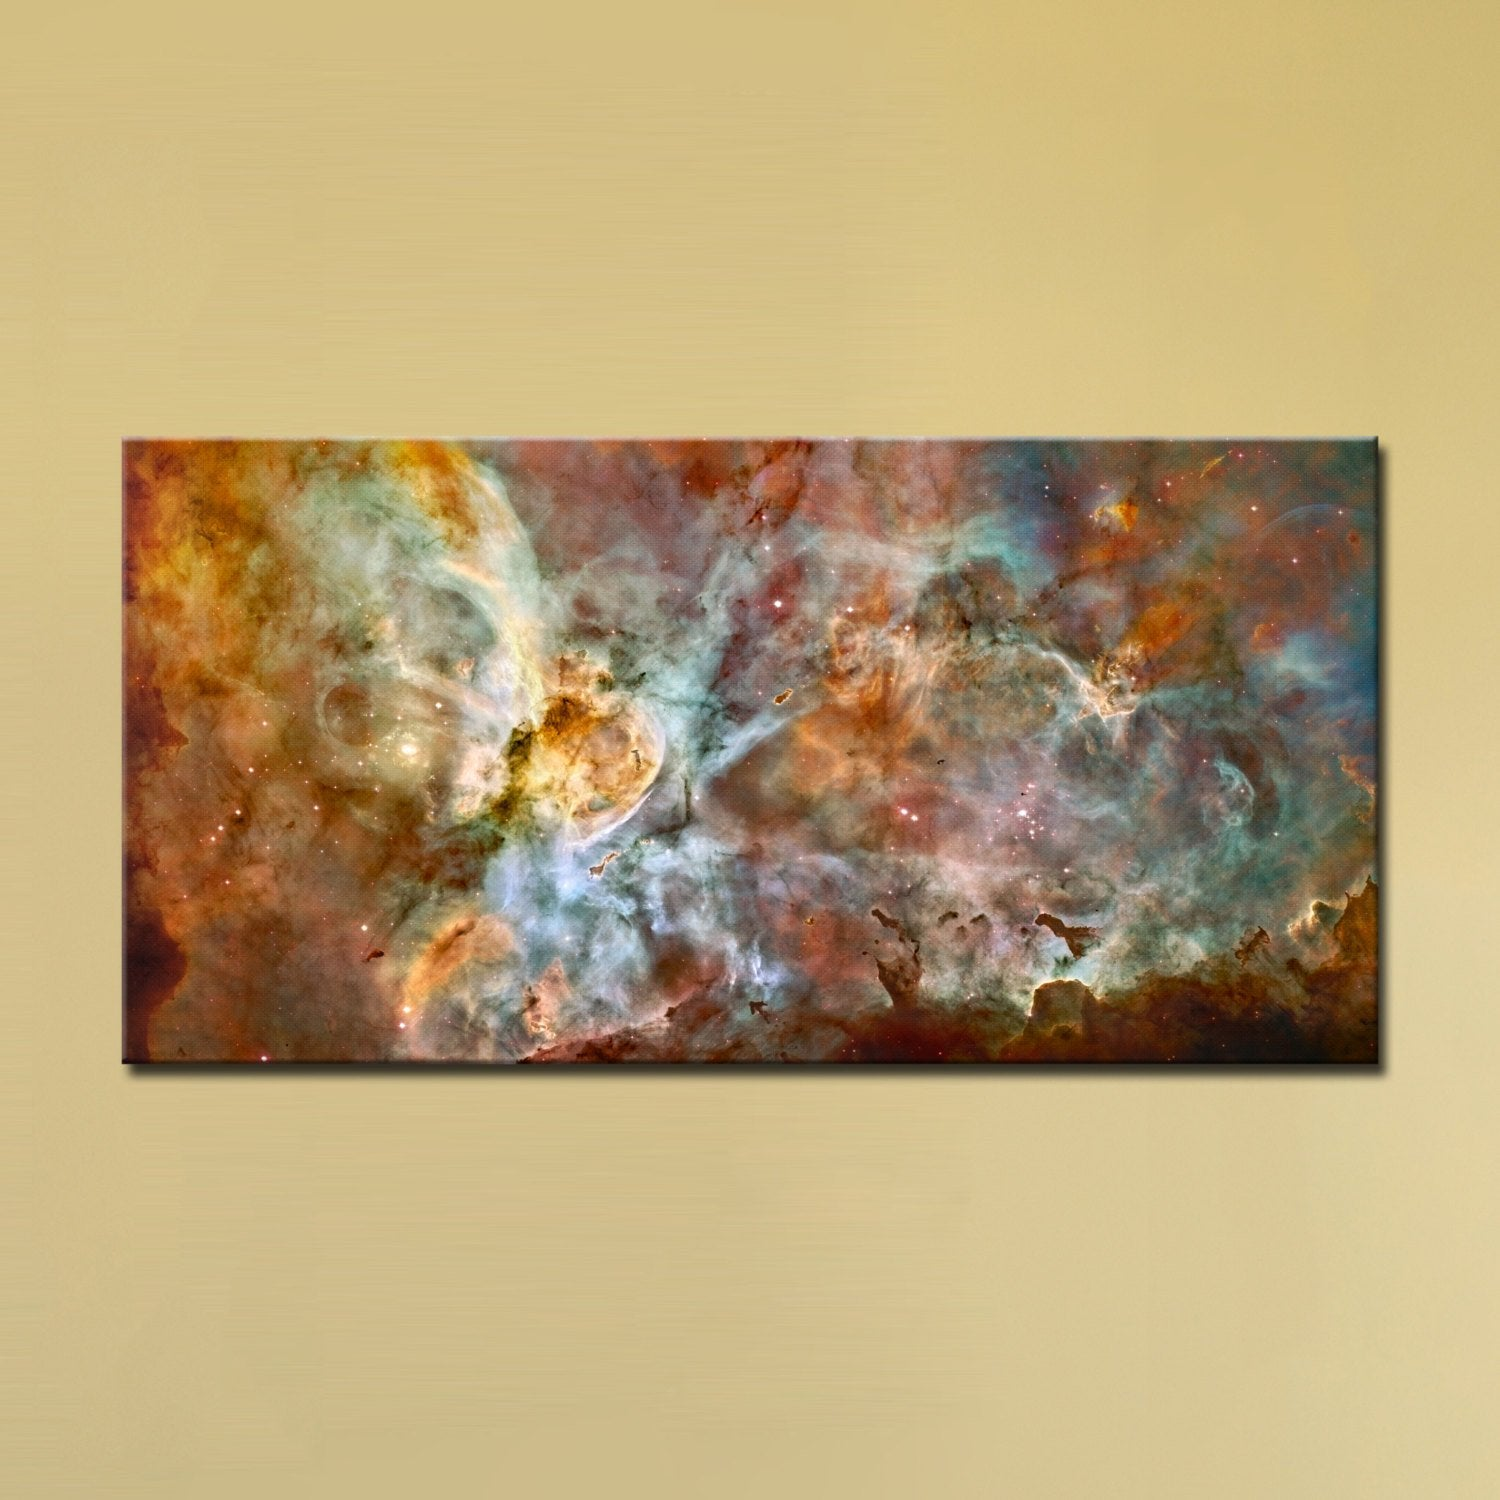 The Carina Nebula, Star Birth in the Extreme (Color) (18″ x 36″) – Canvas Wrap Print